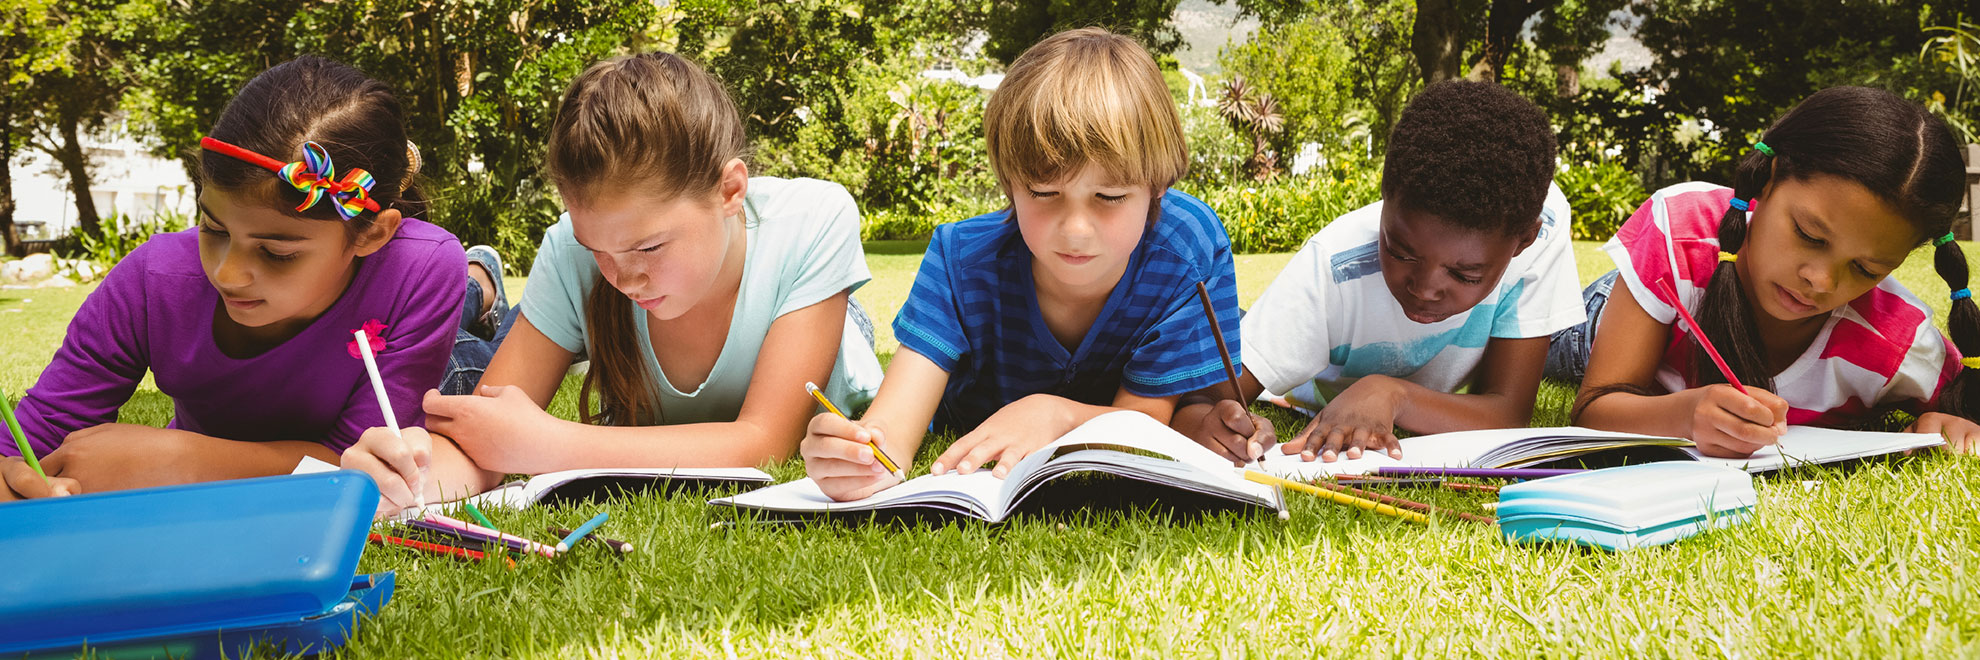 children homework in park